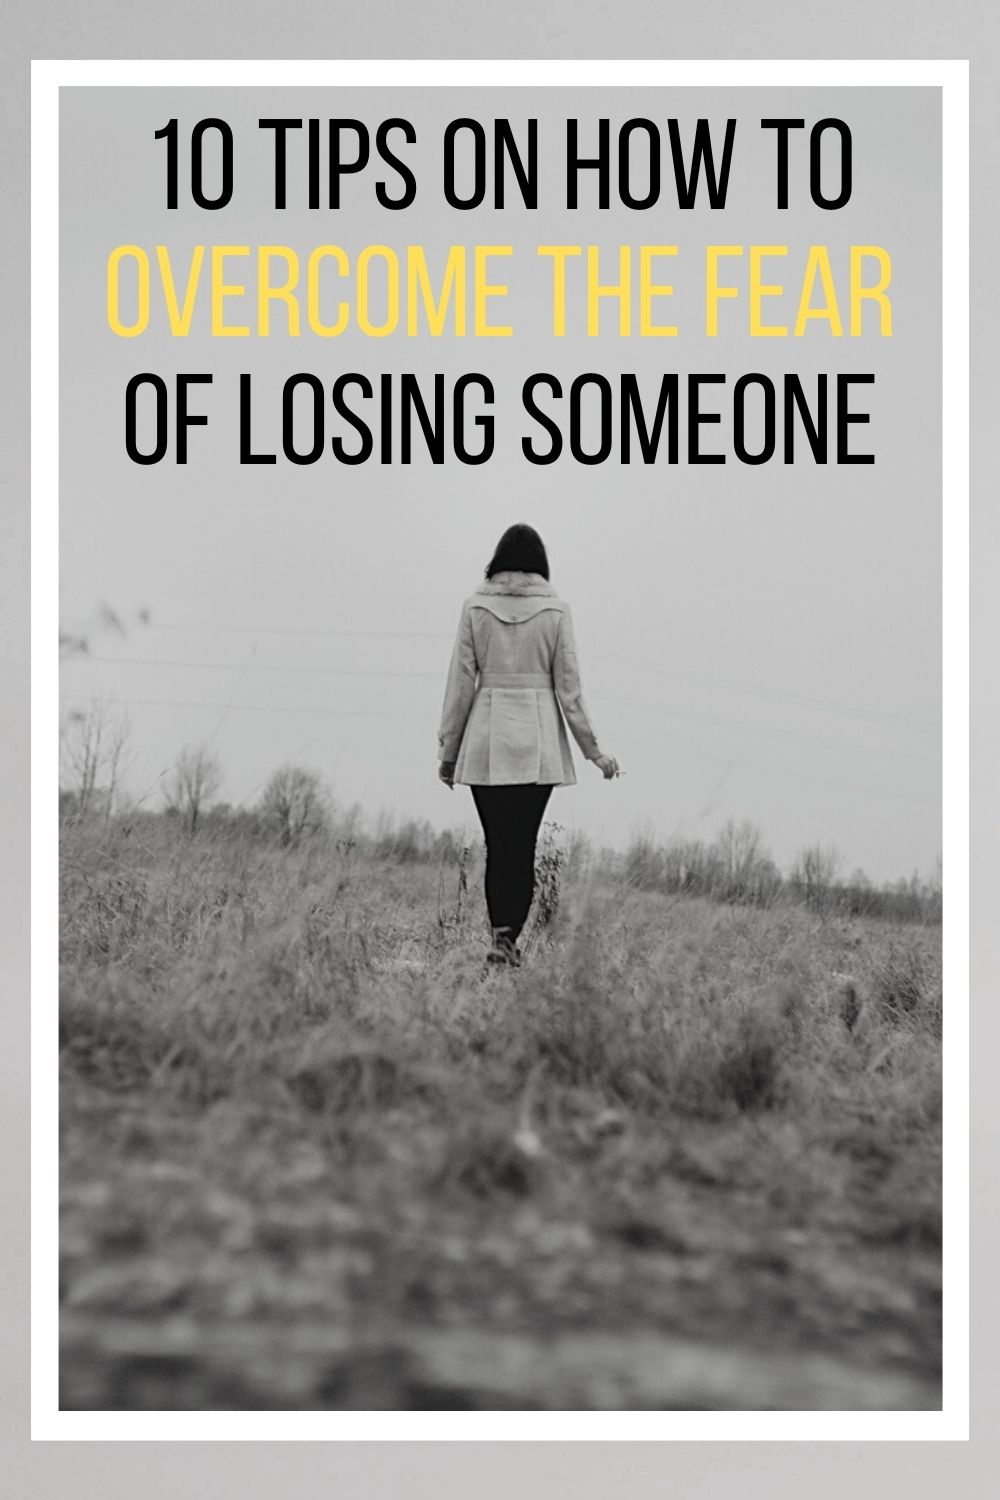 10 Tips On How To Overcome The Fear Of Losing Someone